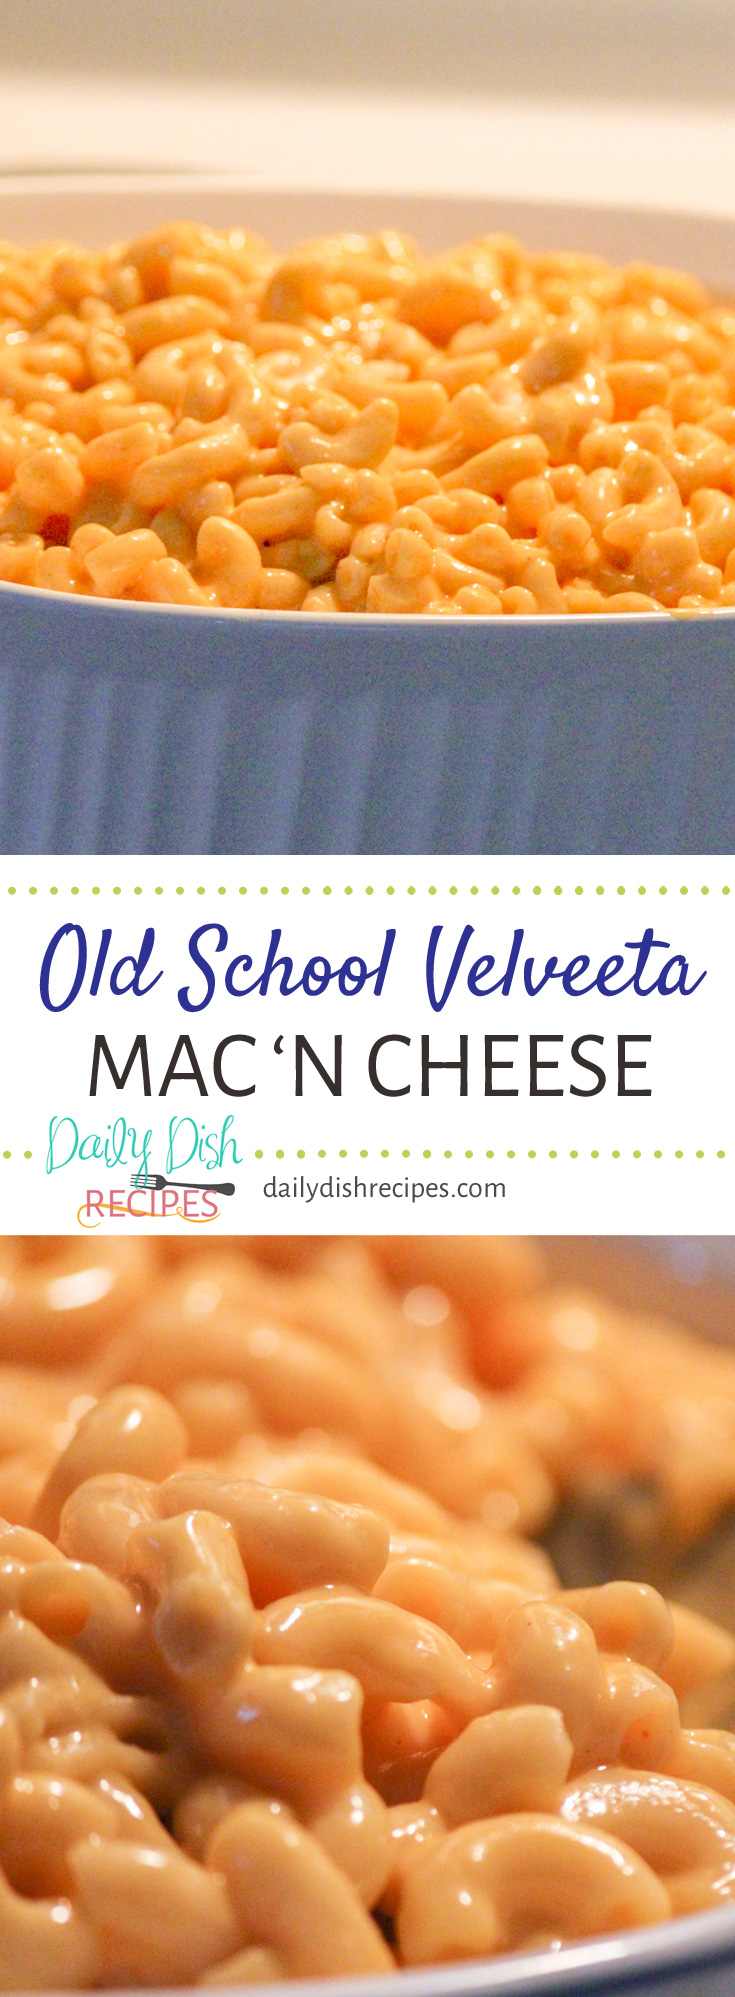 Creamy delicious Old School Velveeta Macaroni and Cheese. Why not take a little blast from the past and enjoy this delicious and super easy way to make Mac 'N Cheese!